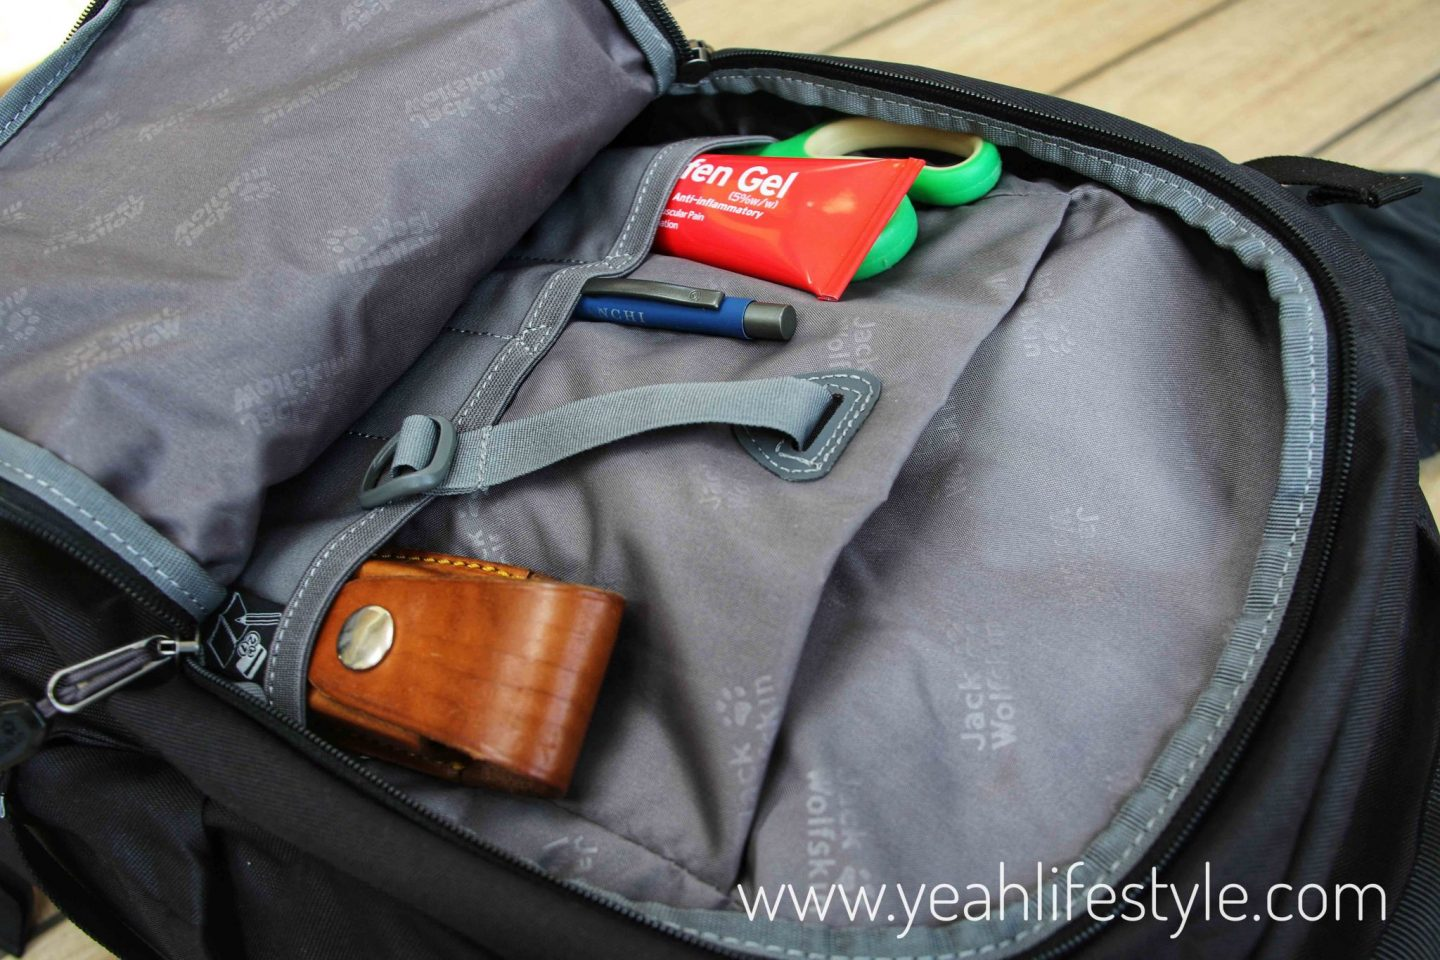 Simply-Hike-Jack-Wolfskin-Rucksack-Vent-Cap-Blogger-Review-Bag-Compartment